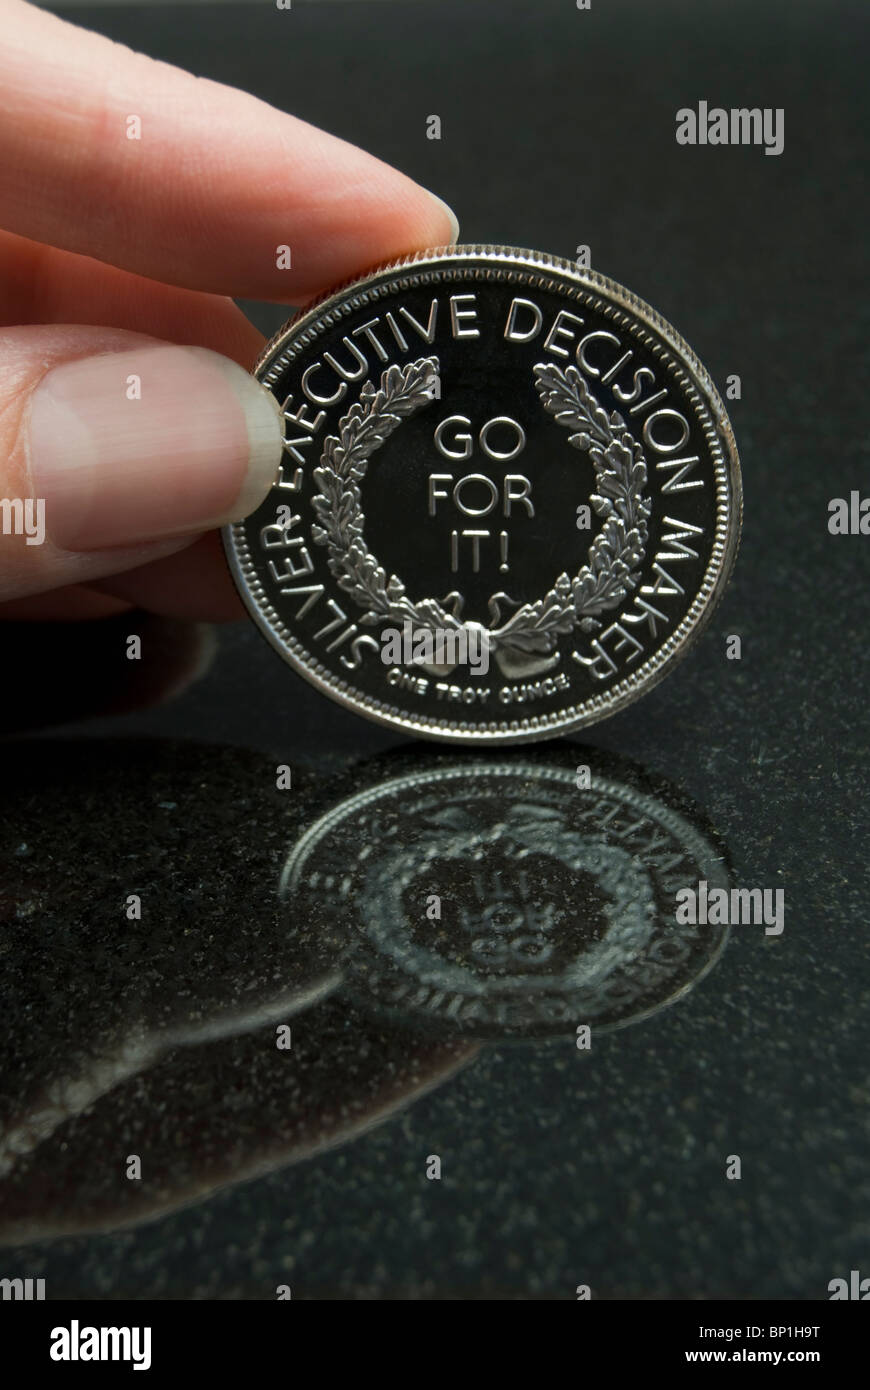 Female hand holding Executive Decision Maker silver coin